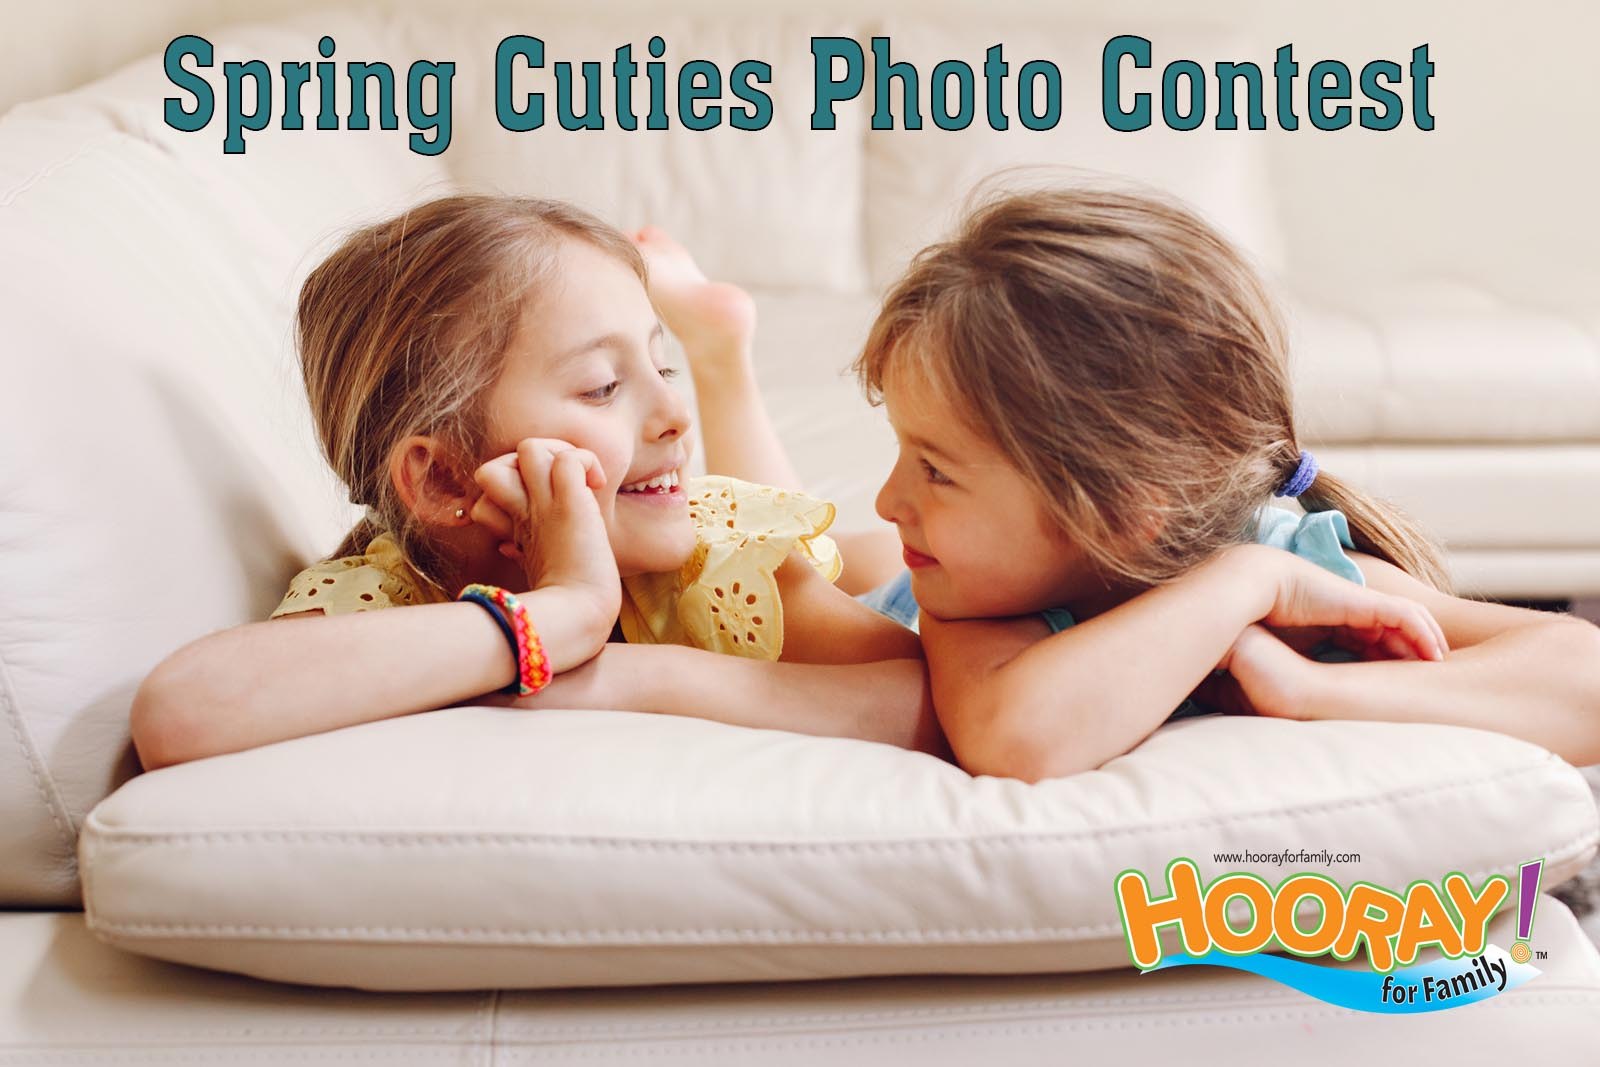 Spring Cuties Photo Contest - Enter to Win